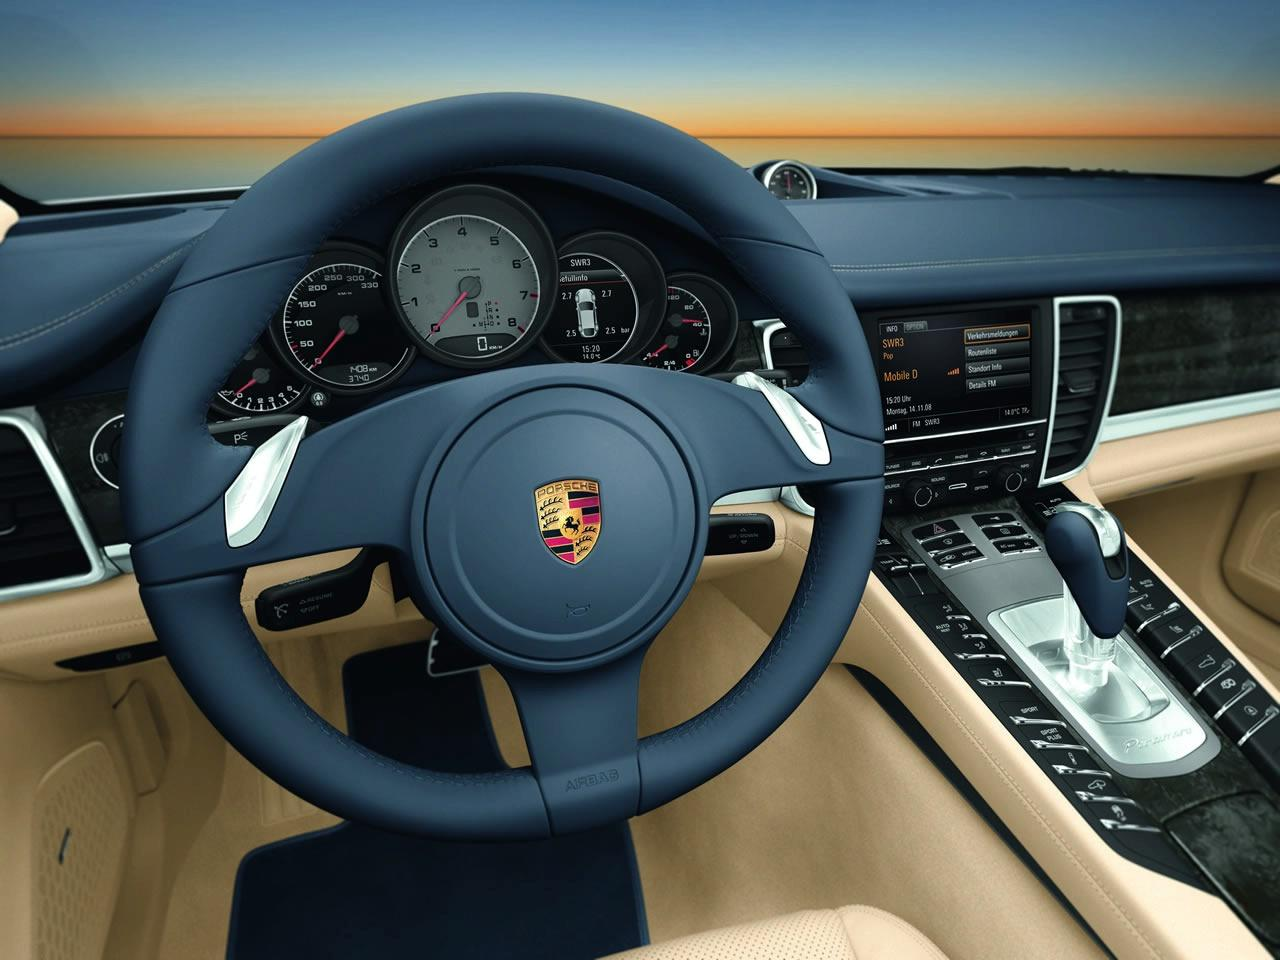 porsche panamera 2010 interior img 8 it s your auto world new cars auto news reviews. Black Bedroom Furniture Sets. Home Design Ideas